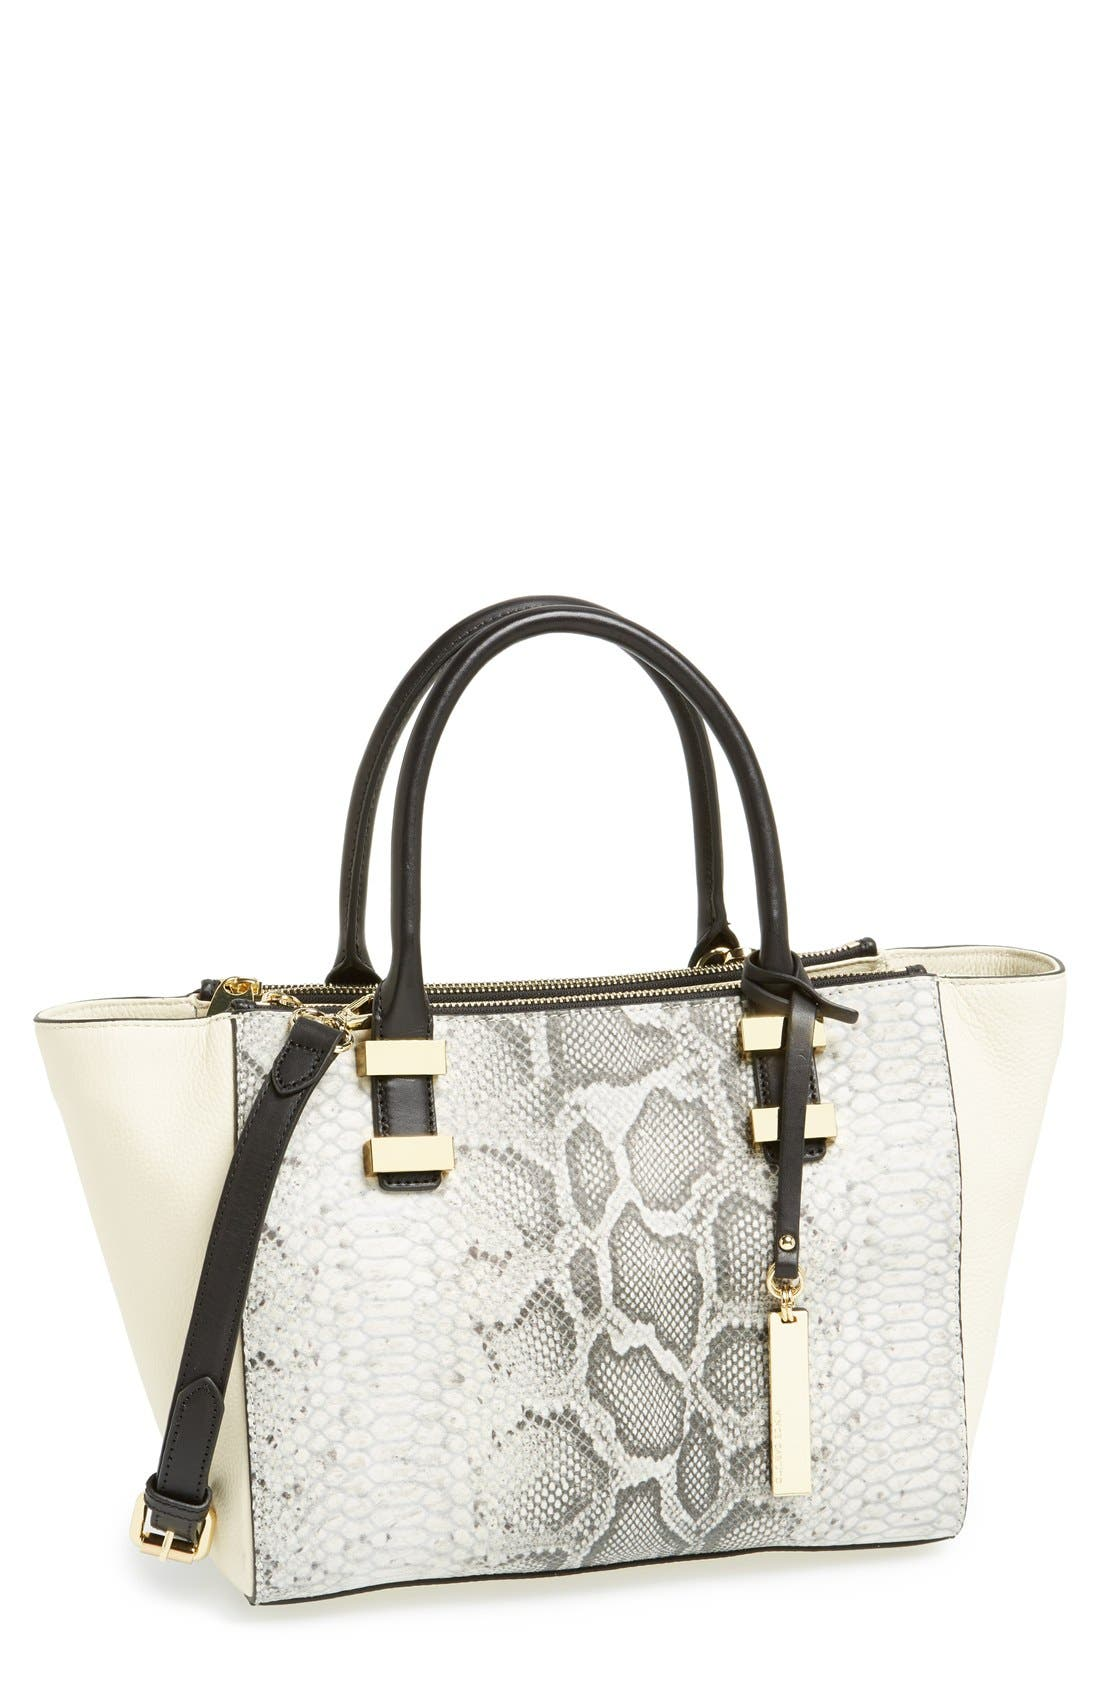 Alternate Image 1 Selected - Vince Camuto 'Mandy' Leather Satchel